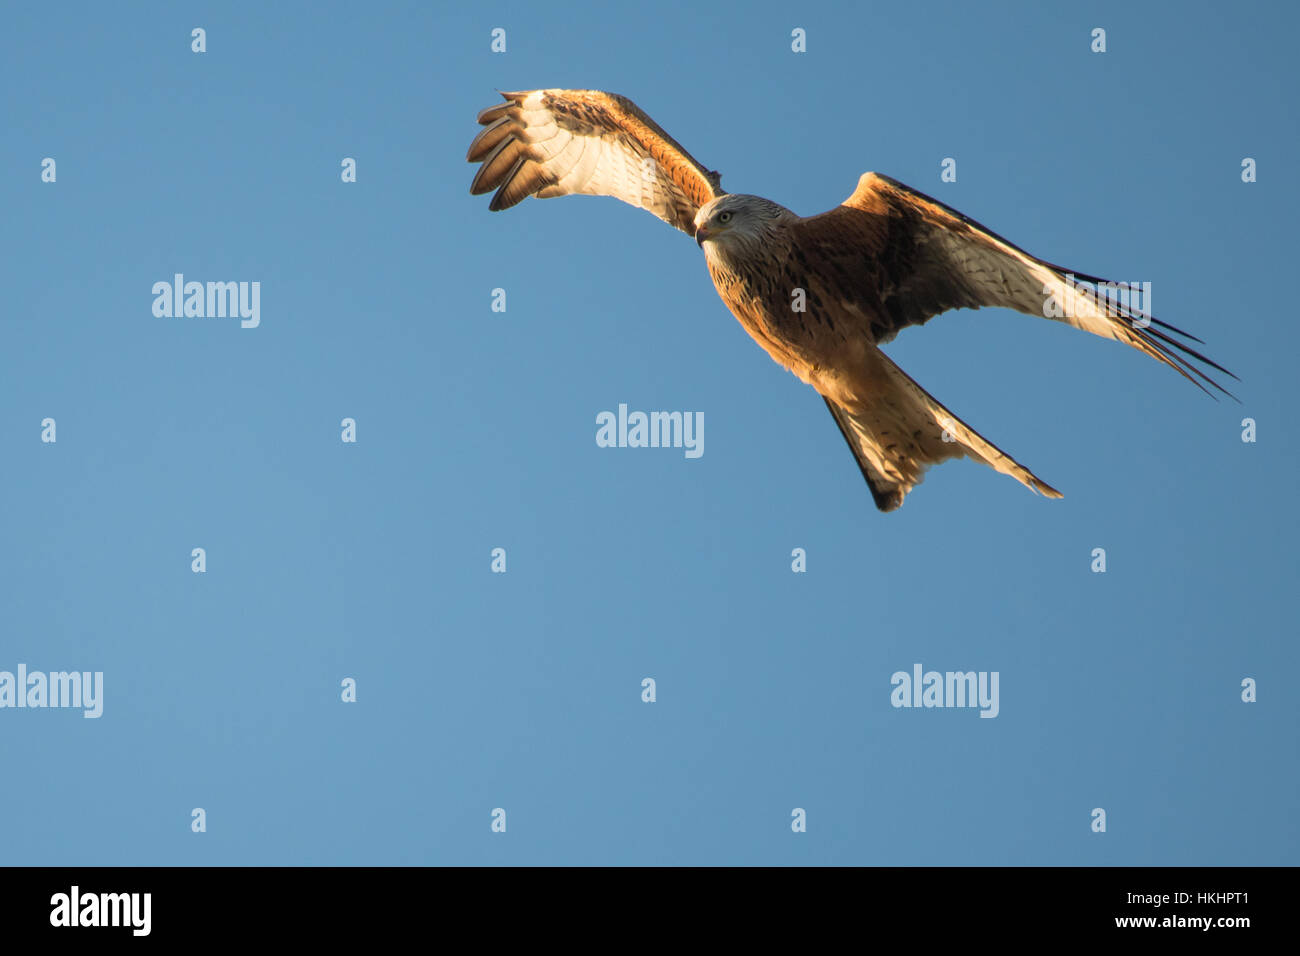 Red kite (Milvus milvus) in flight with wings angled. Medium-large bird of prey in family Accipitridae, flying in - Stock Image